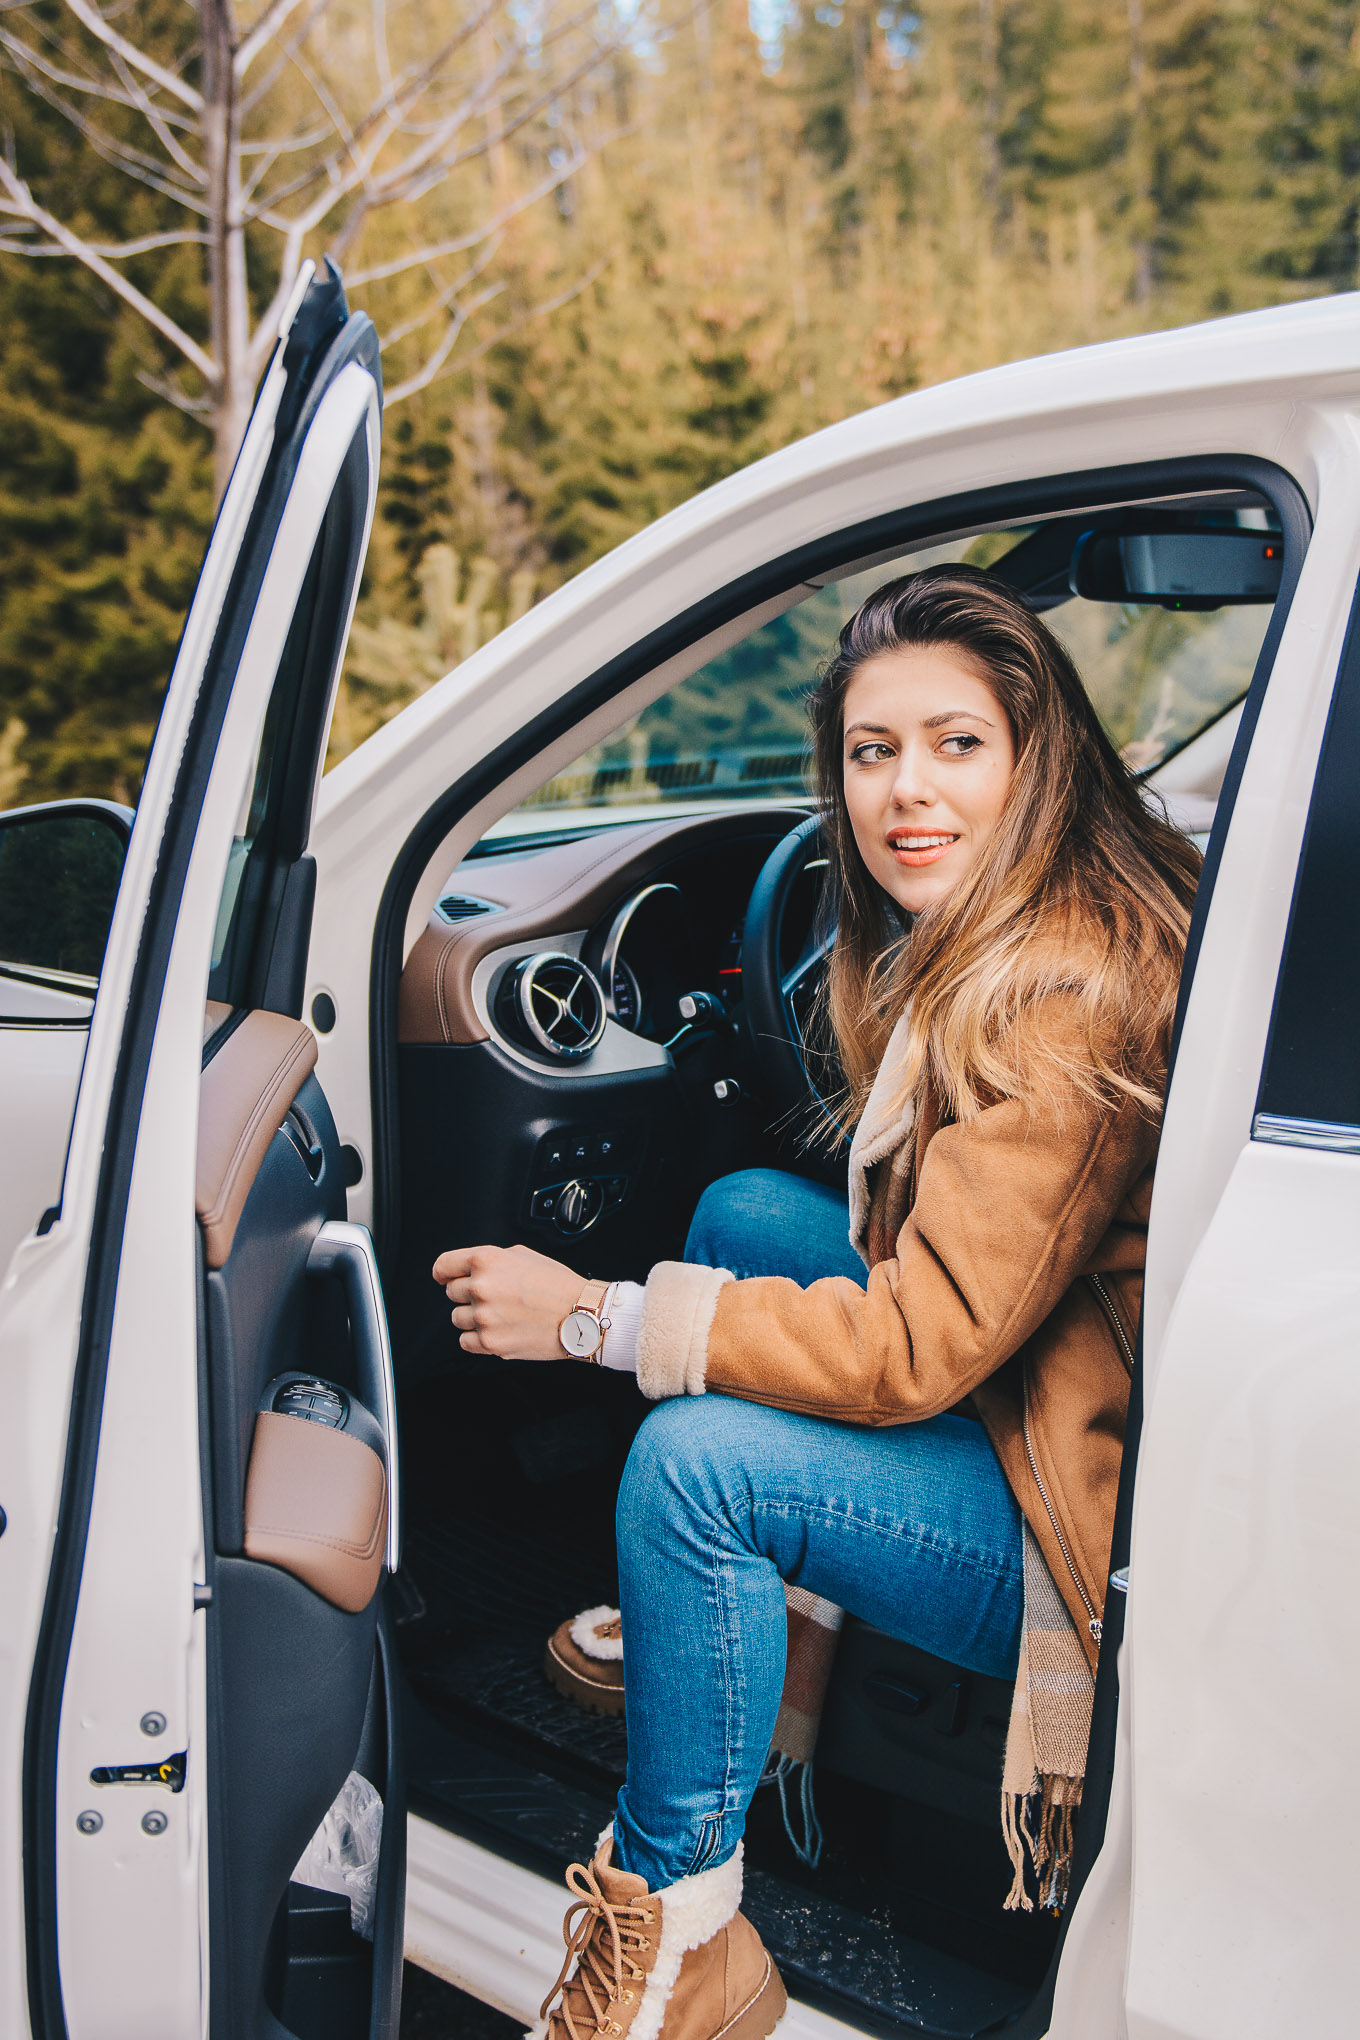 Style blogger in a cool ride